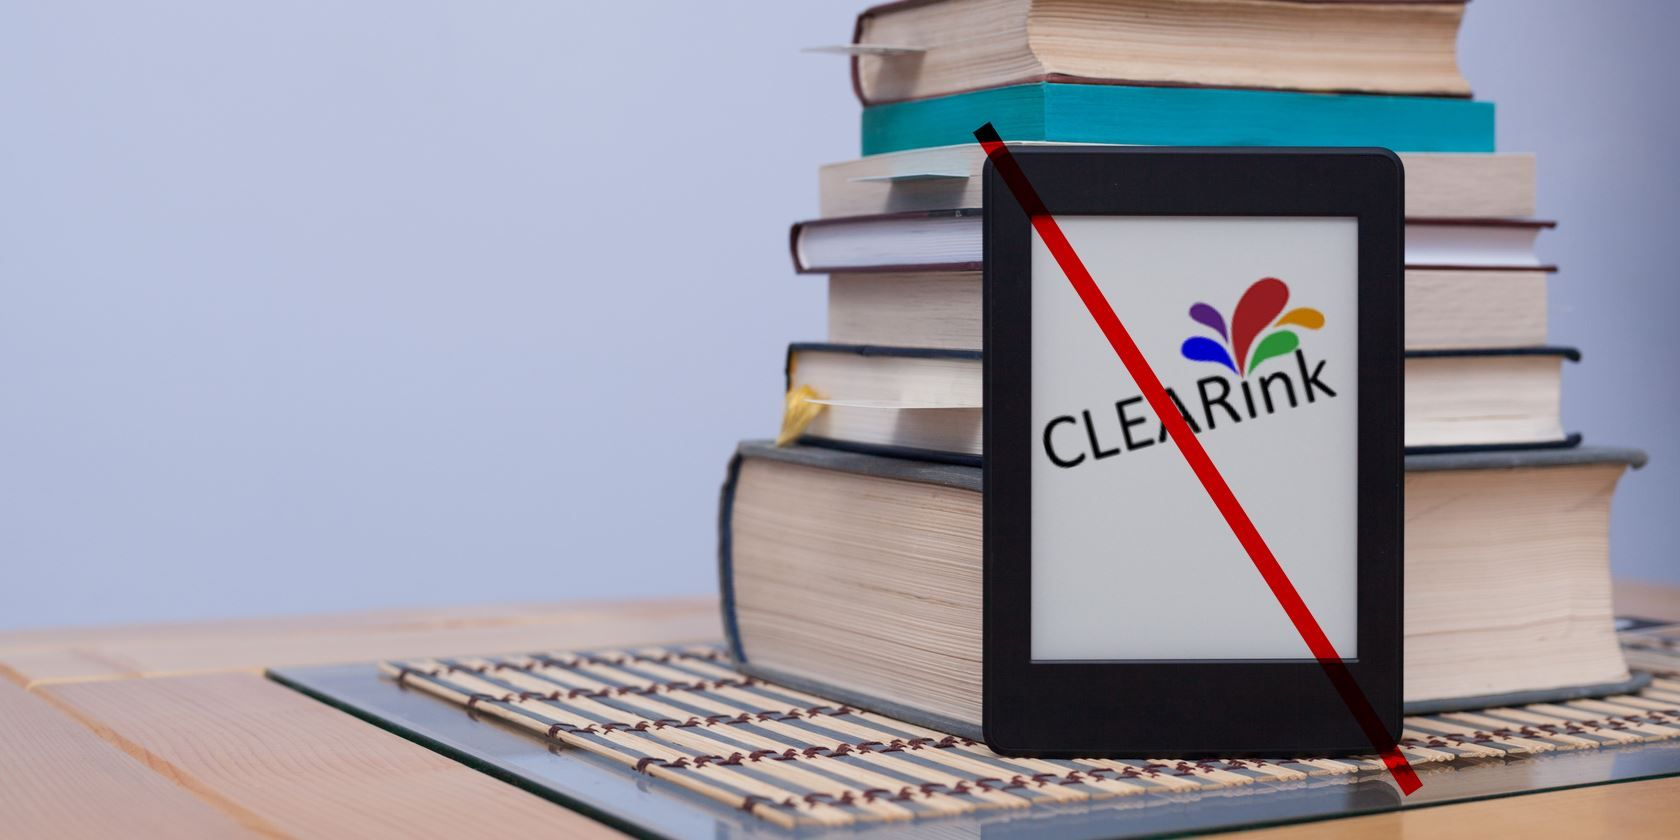 Don't Buy an Ereader: 5 Upcoming Technologies to Kill the Kindle